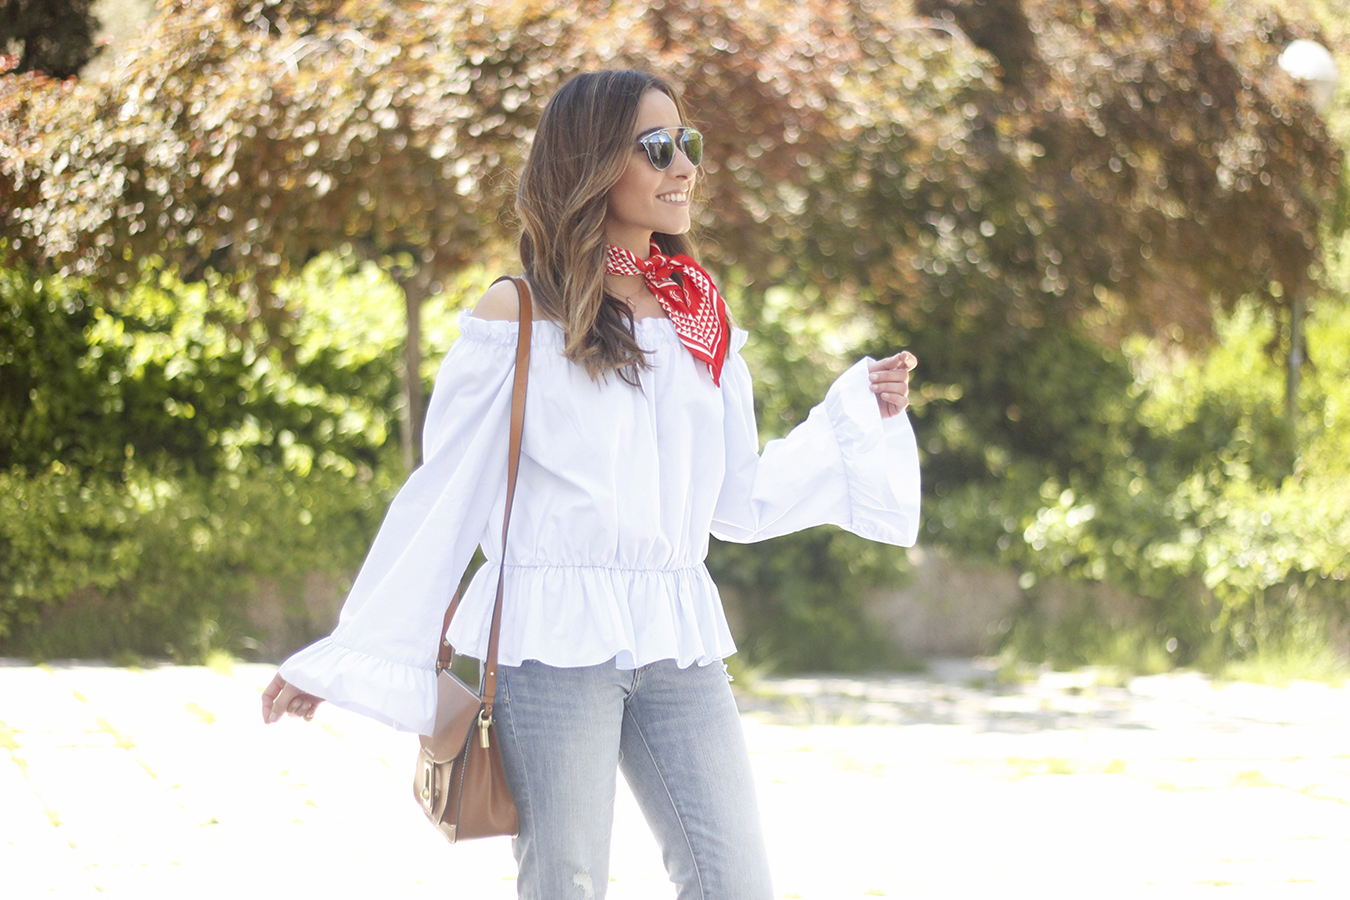 off the shoulders top with bell sleeves red bandana nude heels dior sunglasses spring outfit23